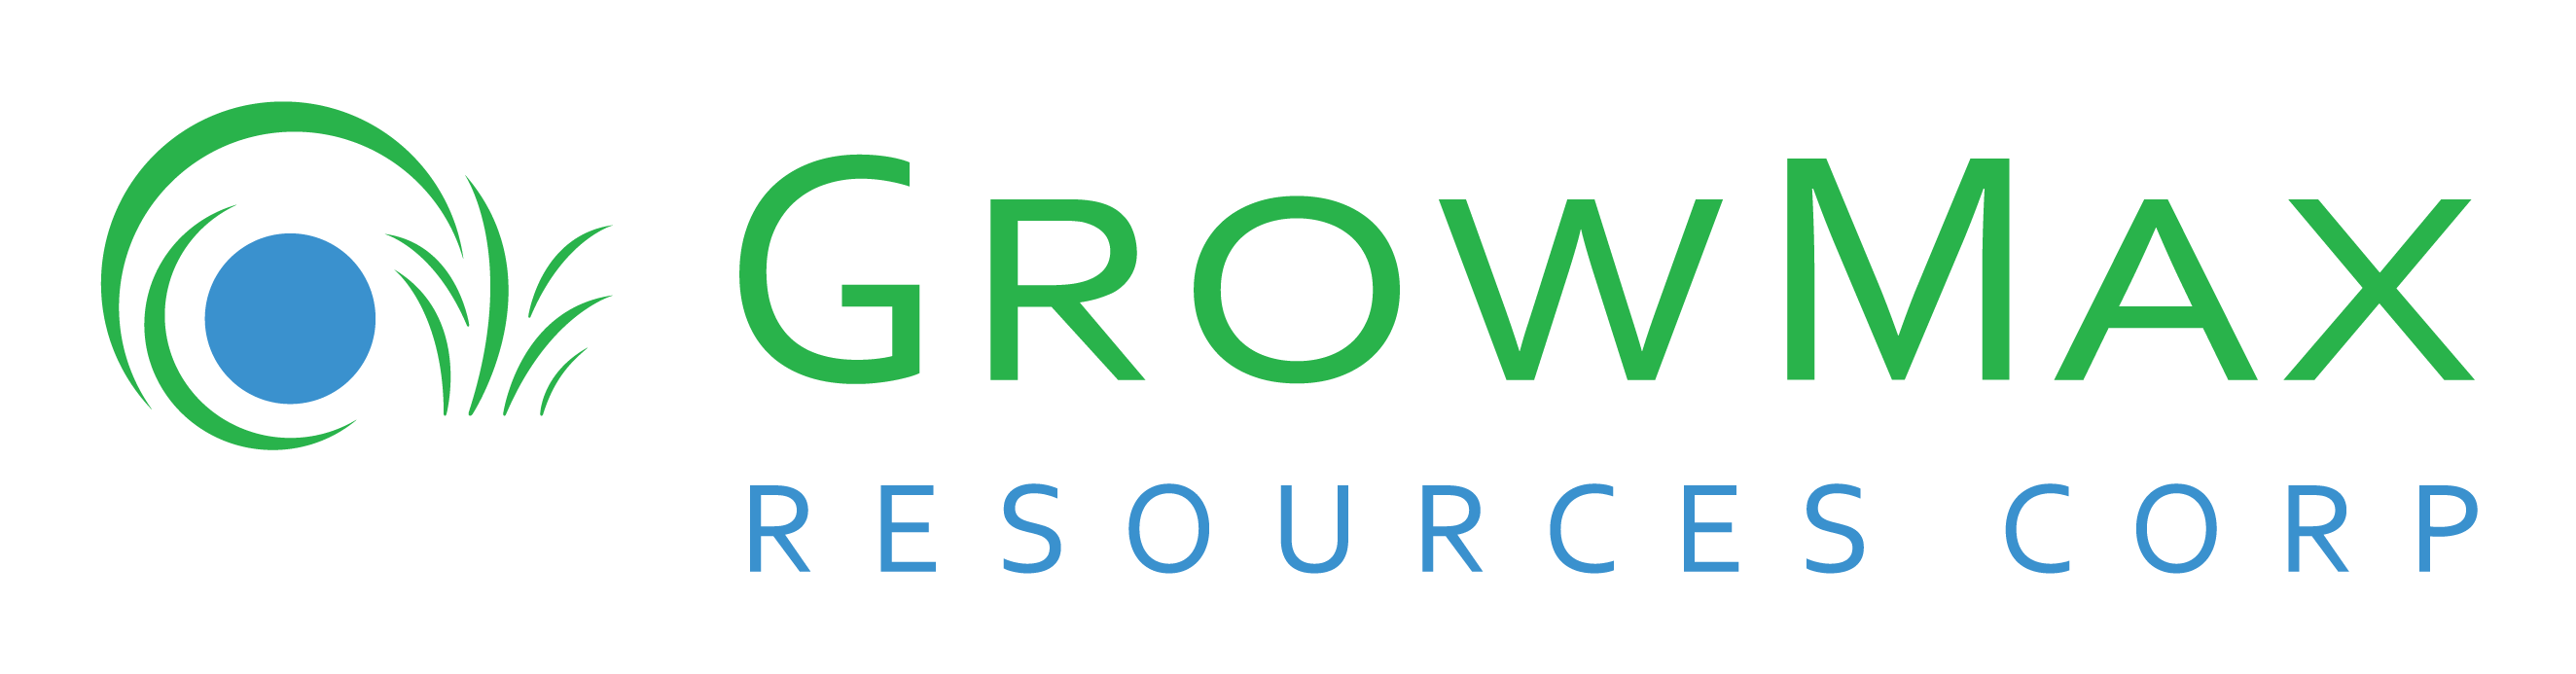 Large GrowMax Resource Corp Logo.png